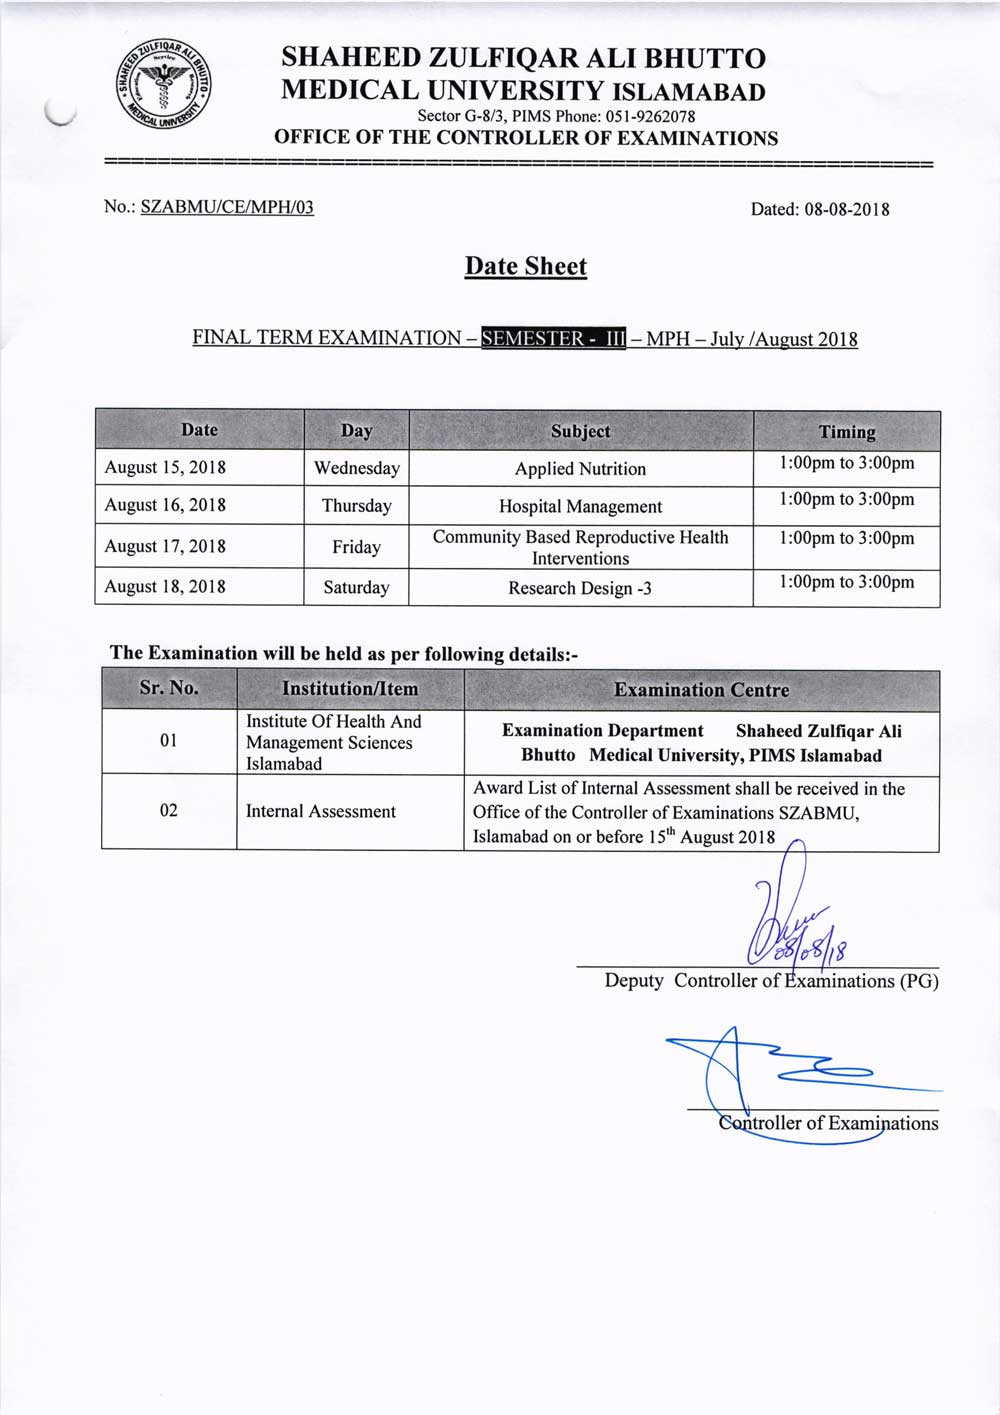 Date Sheets of MPH 1st, 2nd & 3rd Semester Examinations